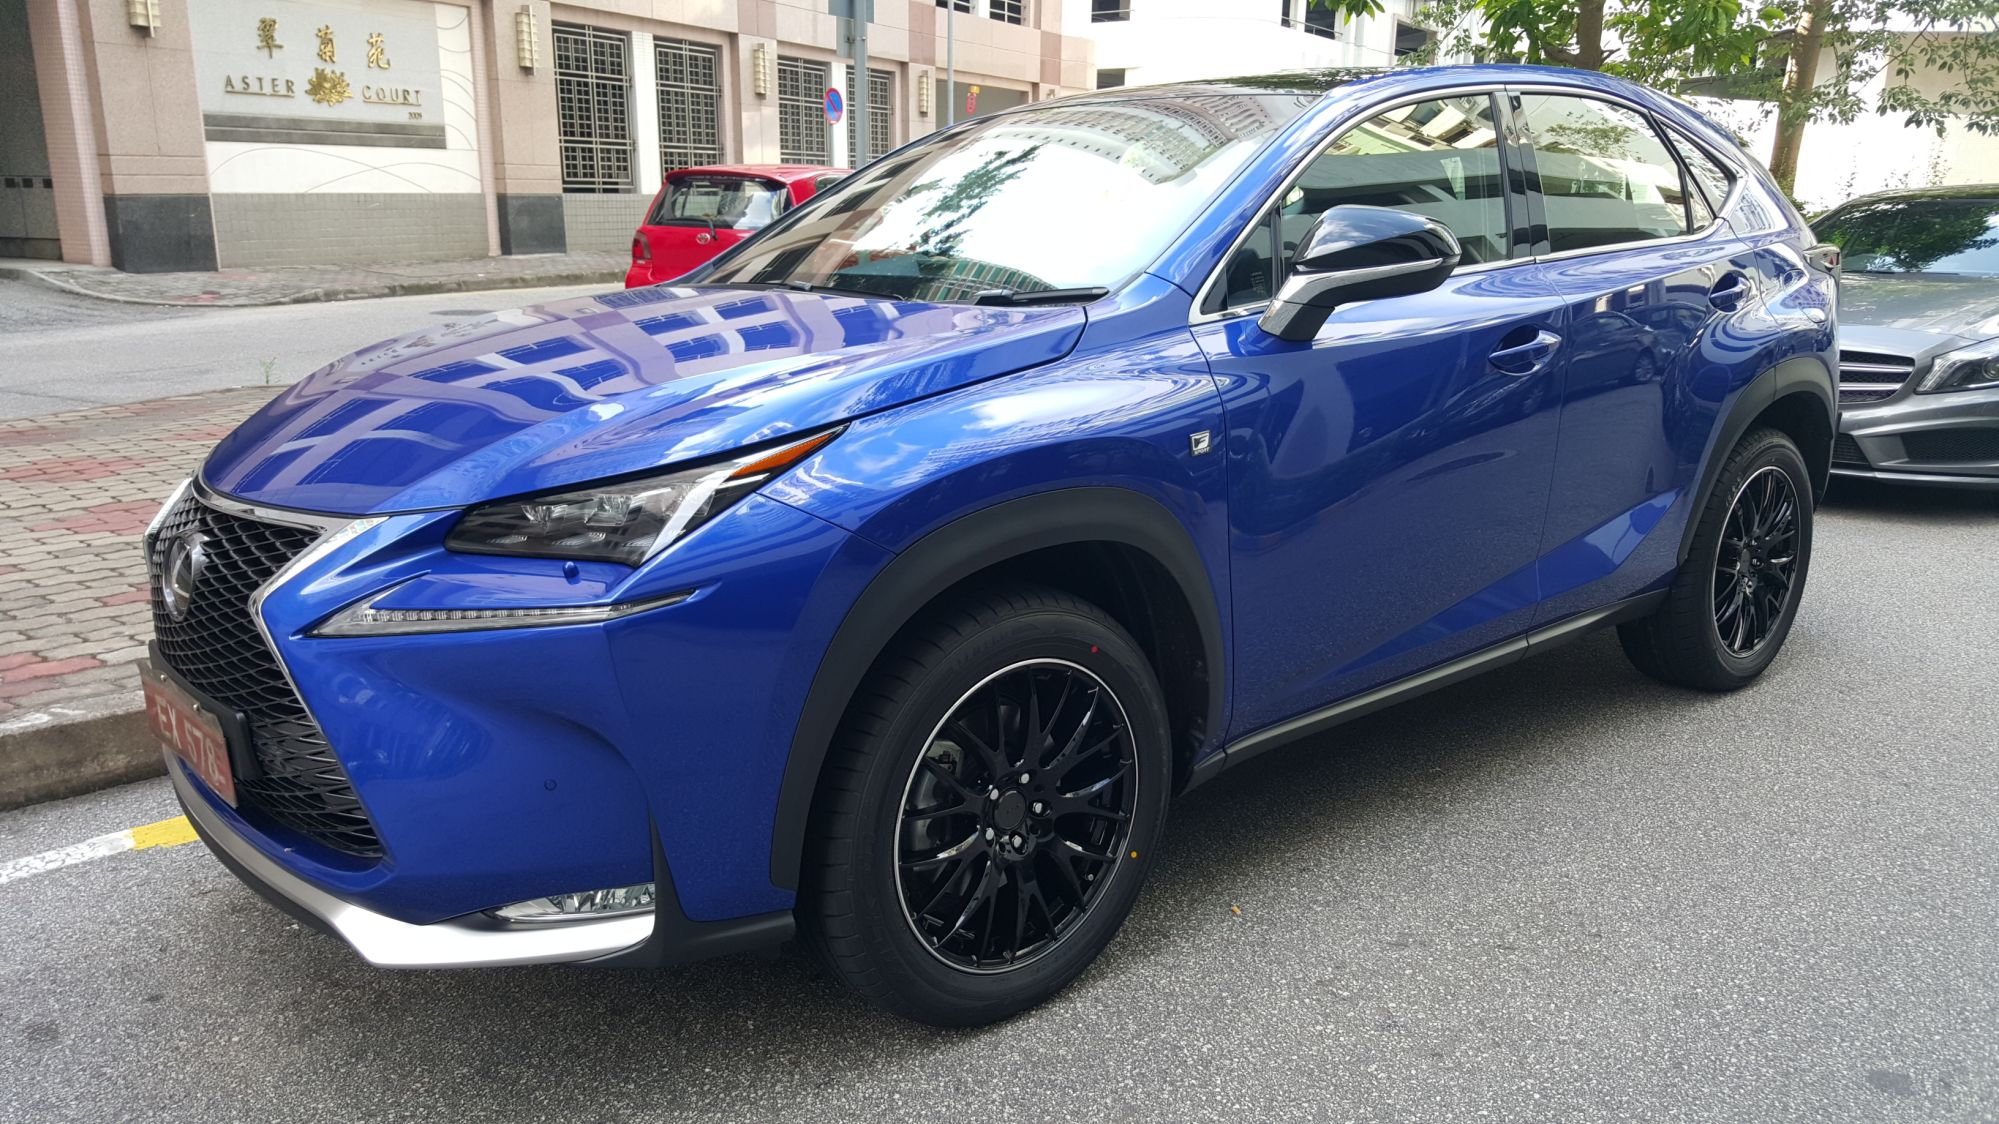 lexus nx 200t custom wheels volk rays 19x et tire size 235 55 r19 x et. Black Bedroom Furniture Sets. Home Design Ideas